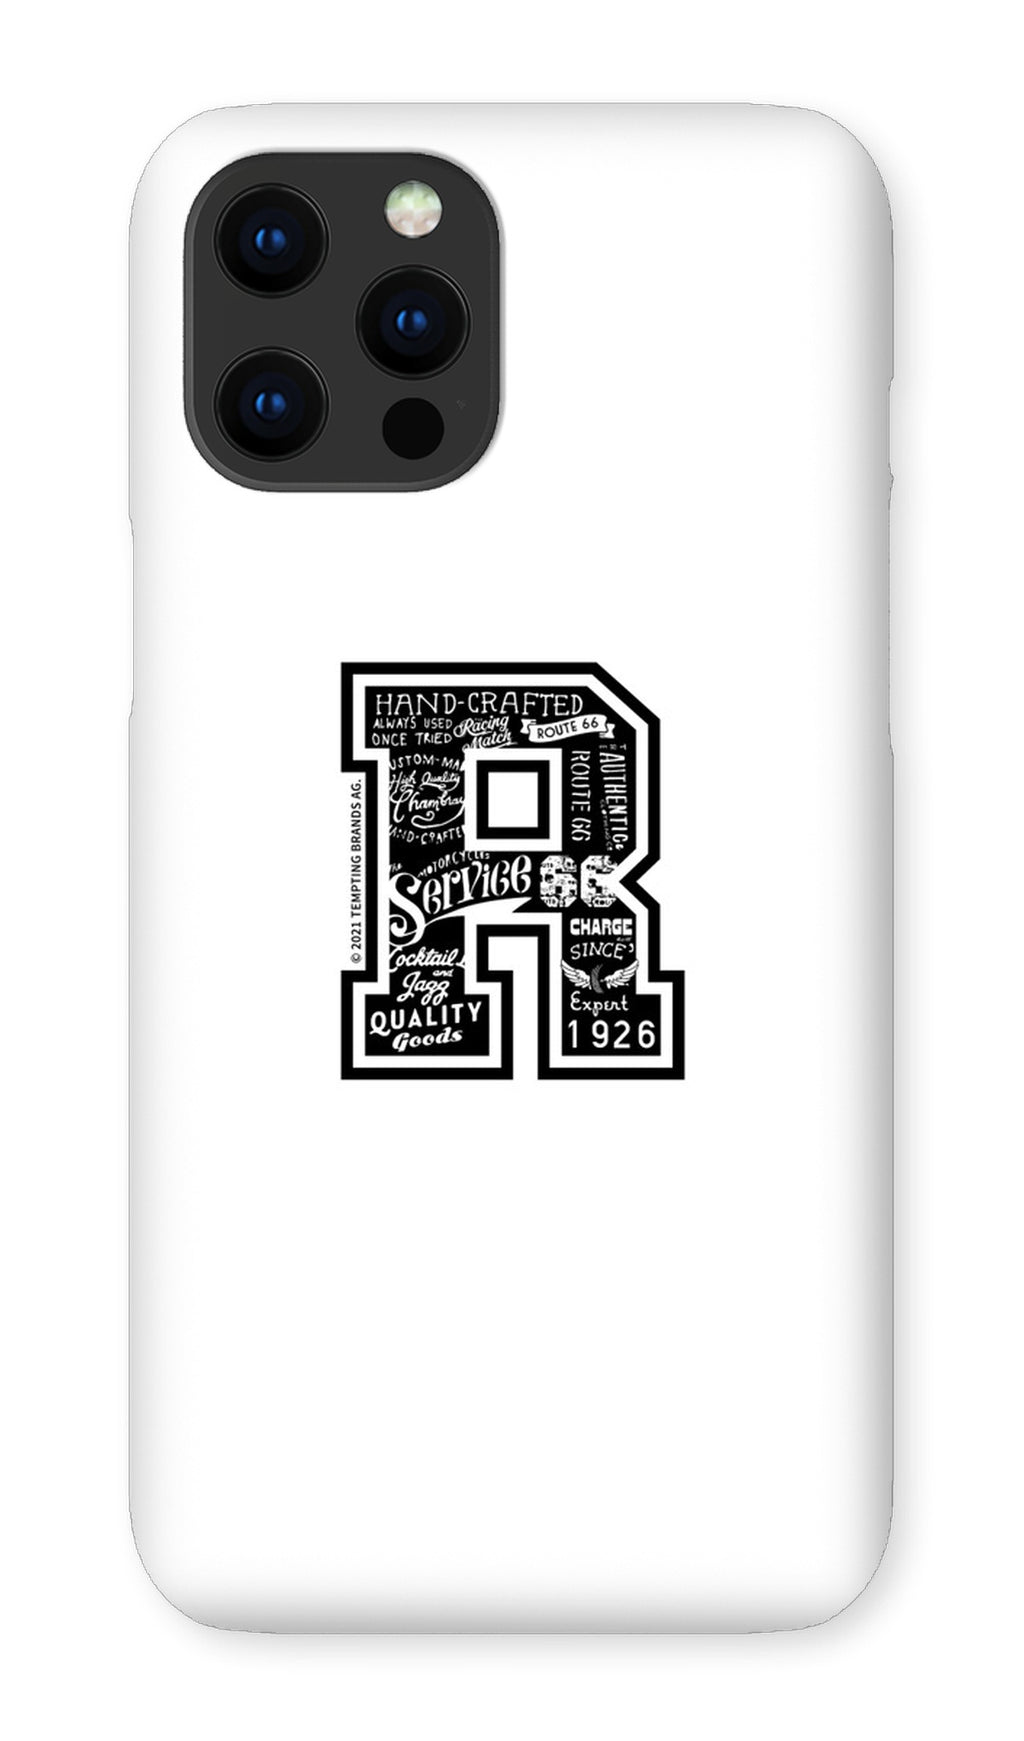 ROUTE 66® R Phone Case